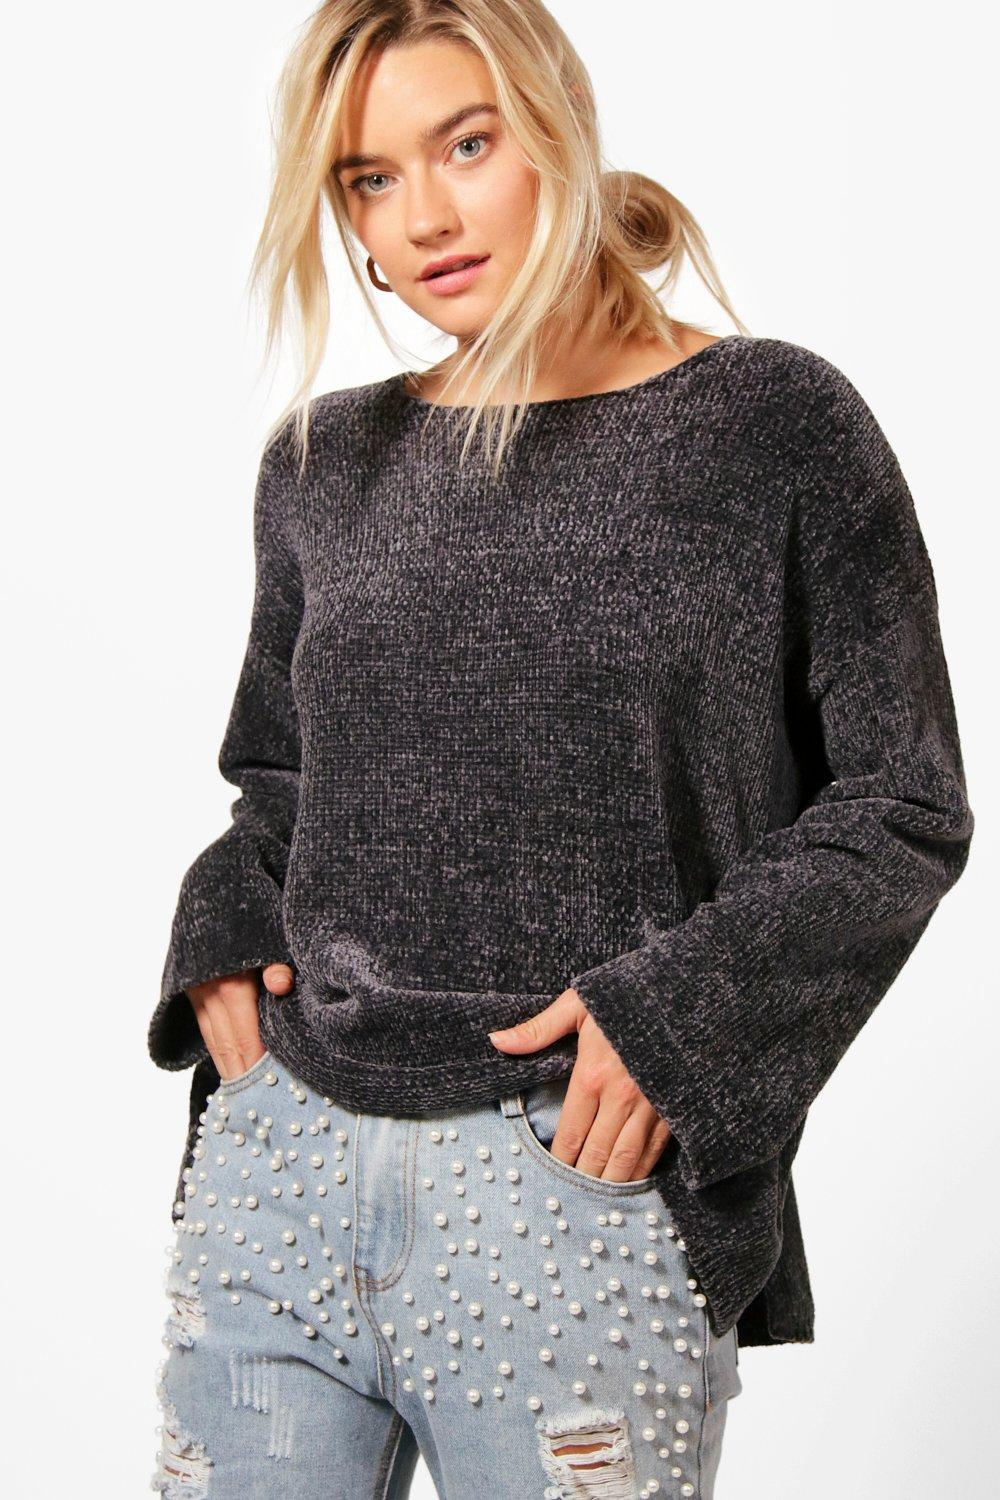 Womens Übergroßes Chenille-Pullover - anthrazit - S/M, Anthrazit - Boohoo.com